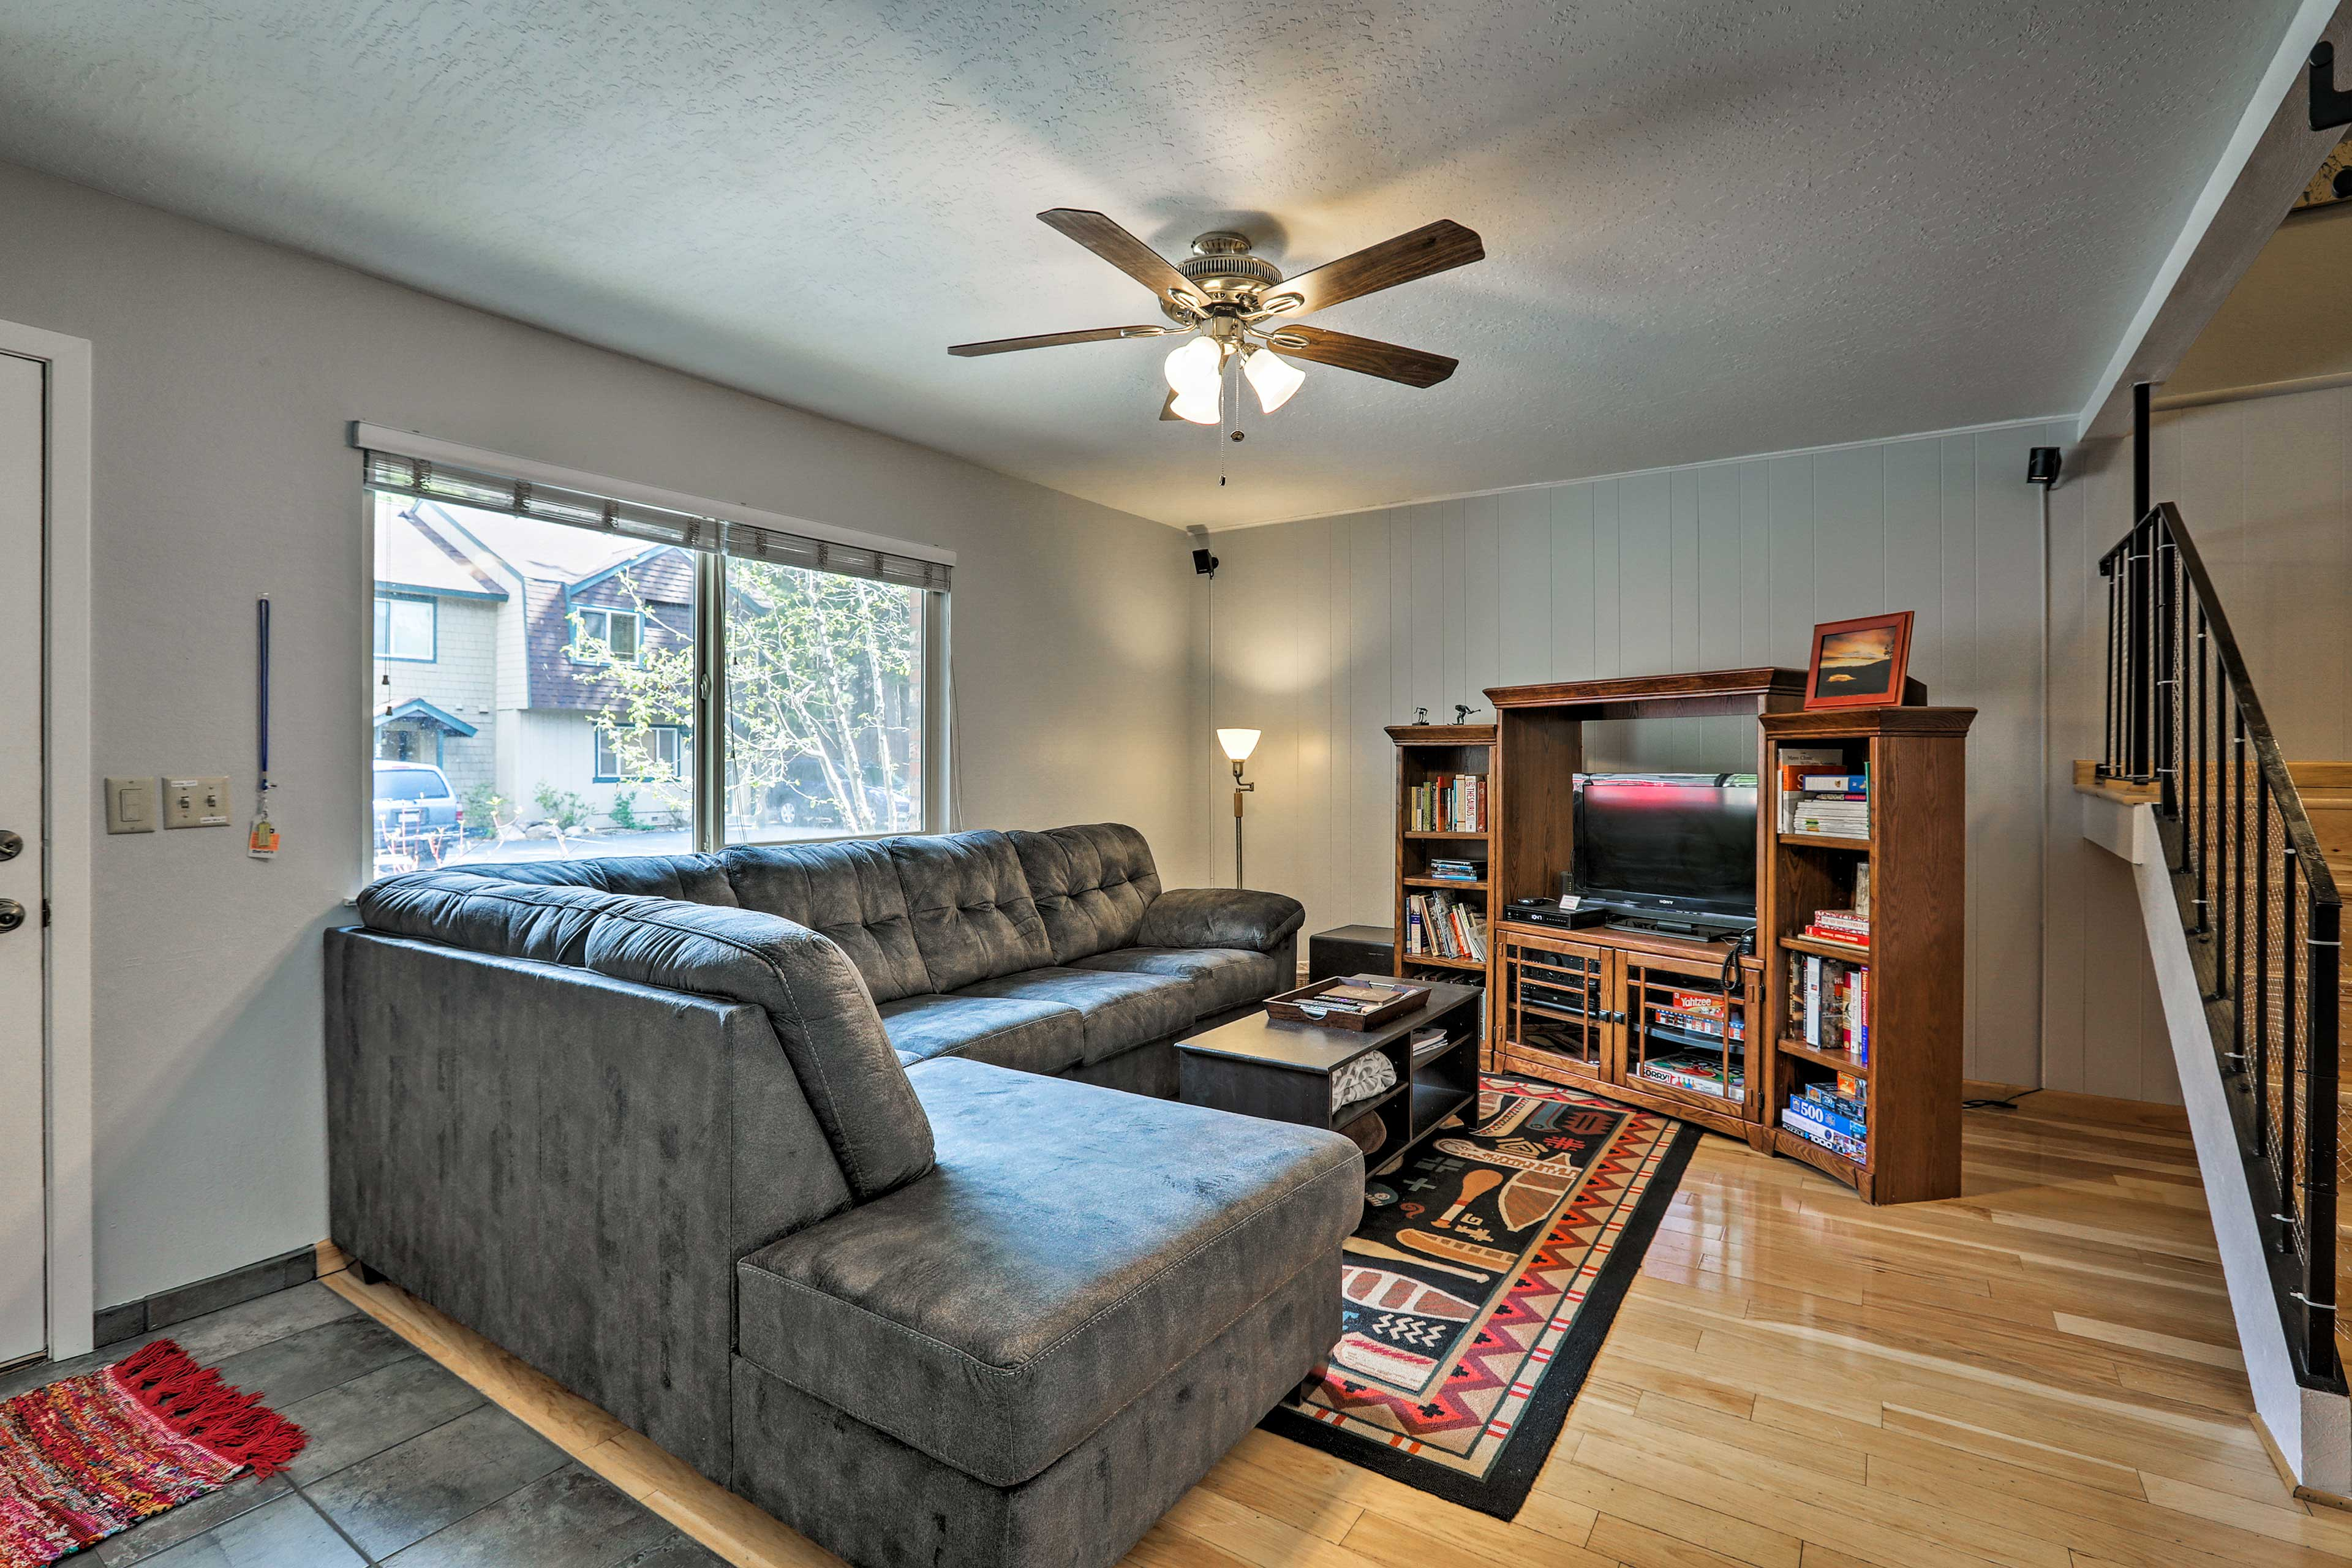 There's room for 8 people at the 3-bedroom, 2.5-bathroom property.